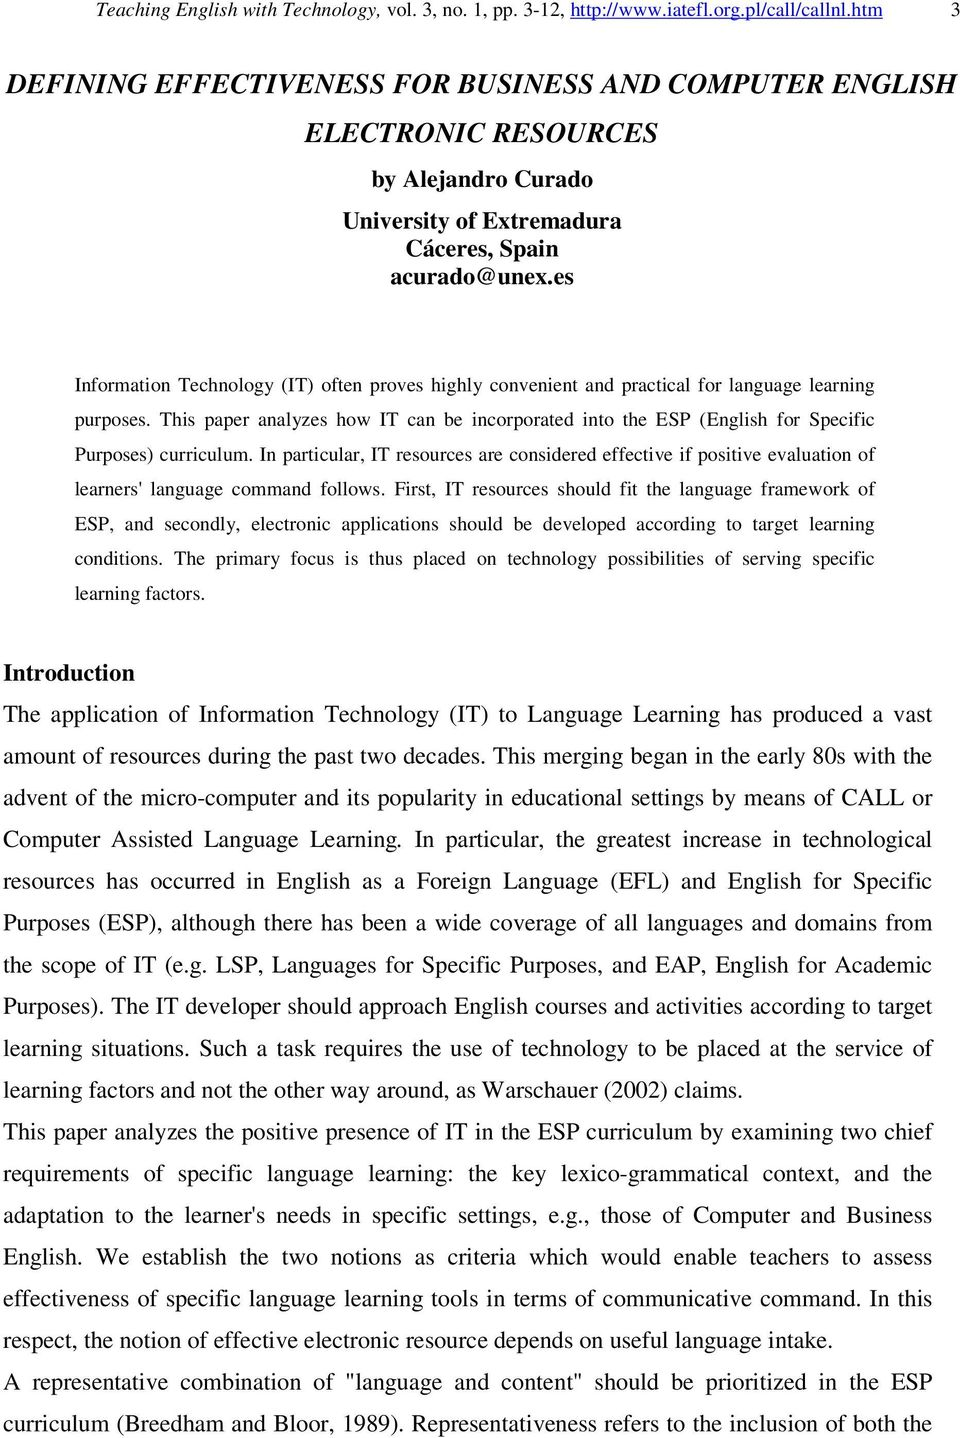 es Information Technology (IT) often proves highly convenient and practical for language learning purposes.